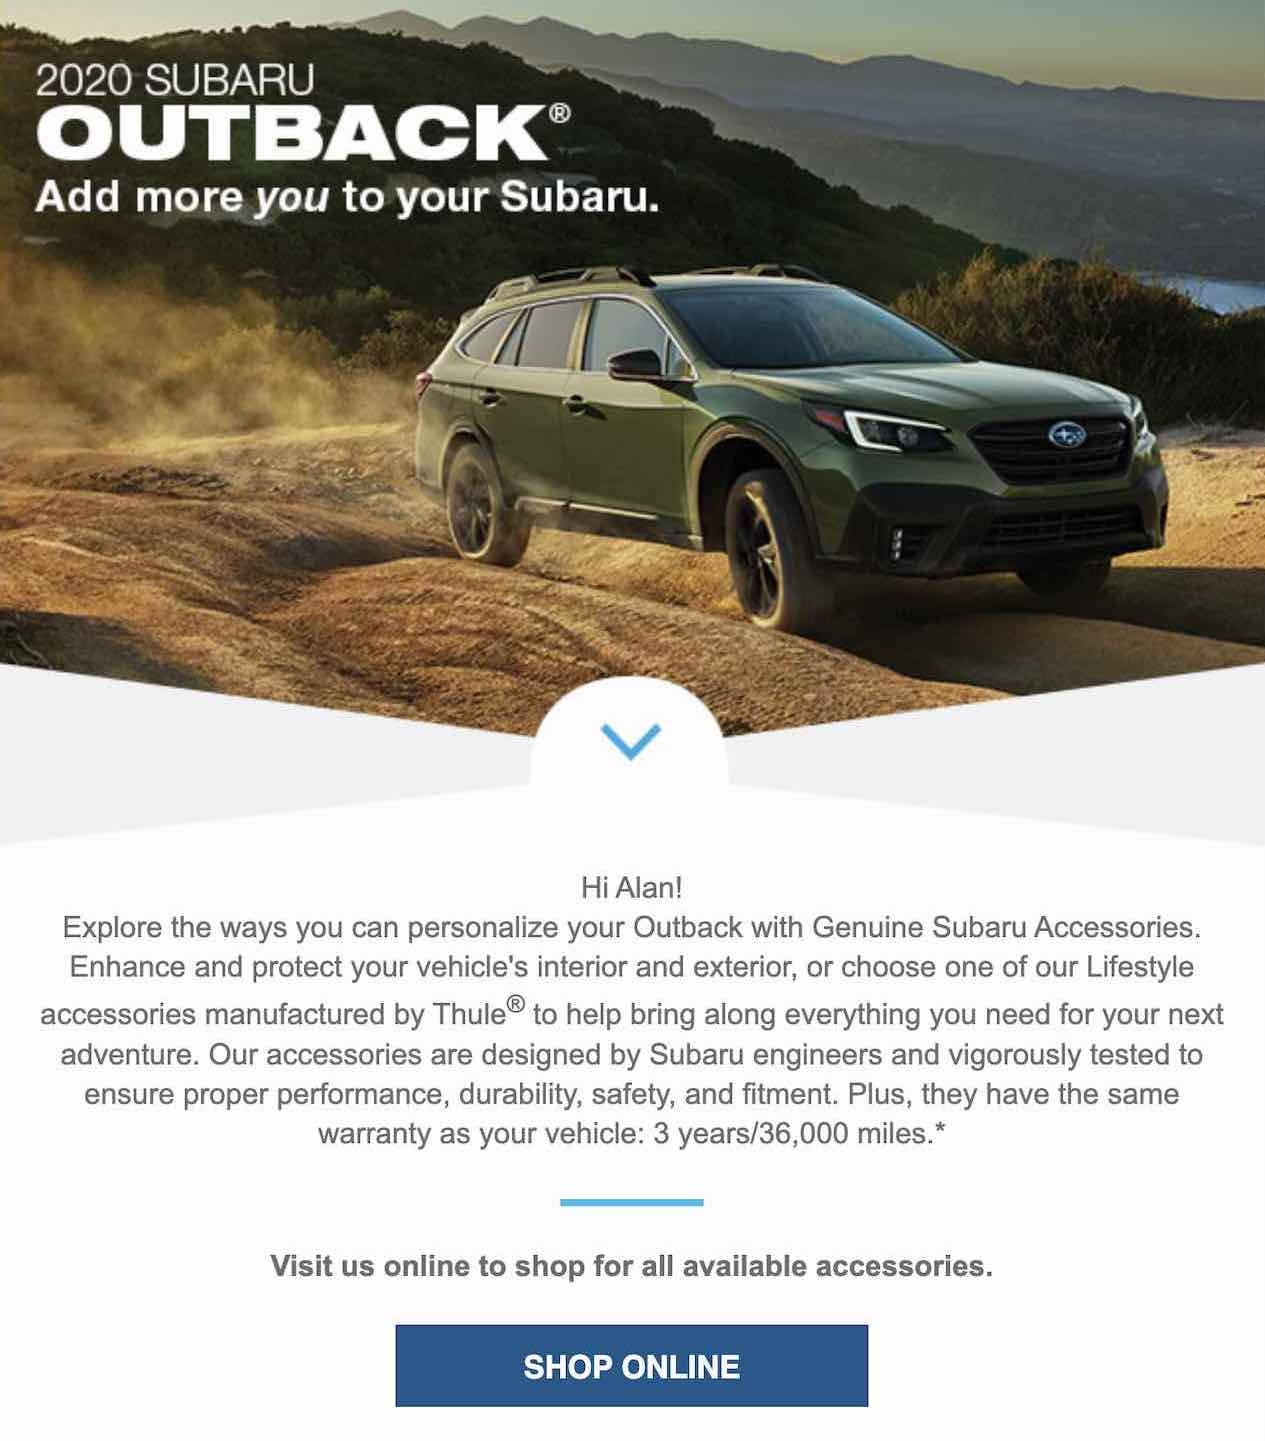 Screenshot of an email promoting the 2020 Subaru Outback